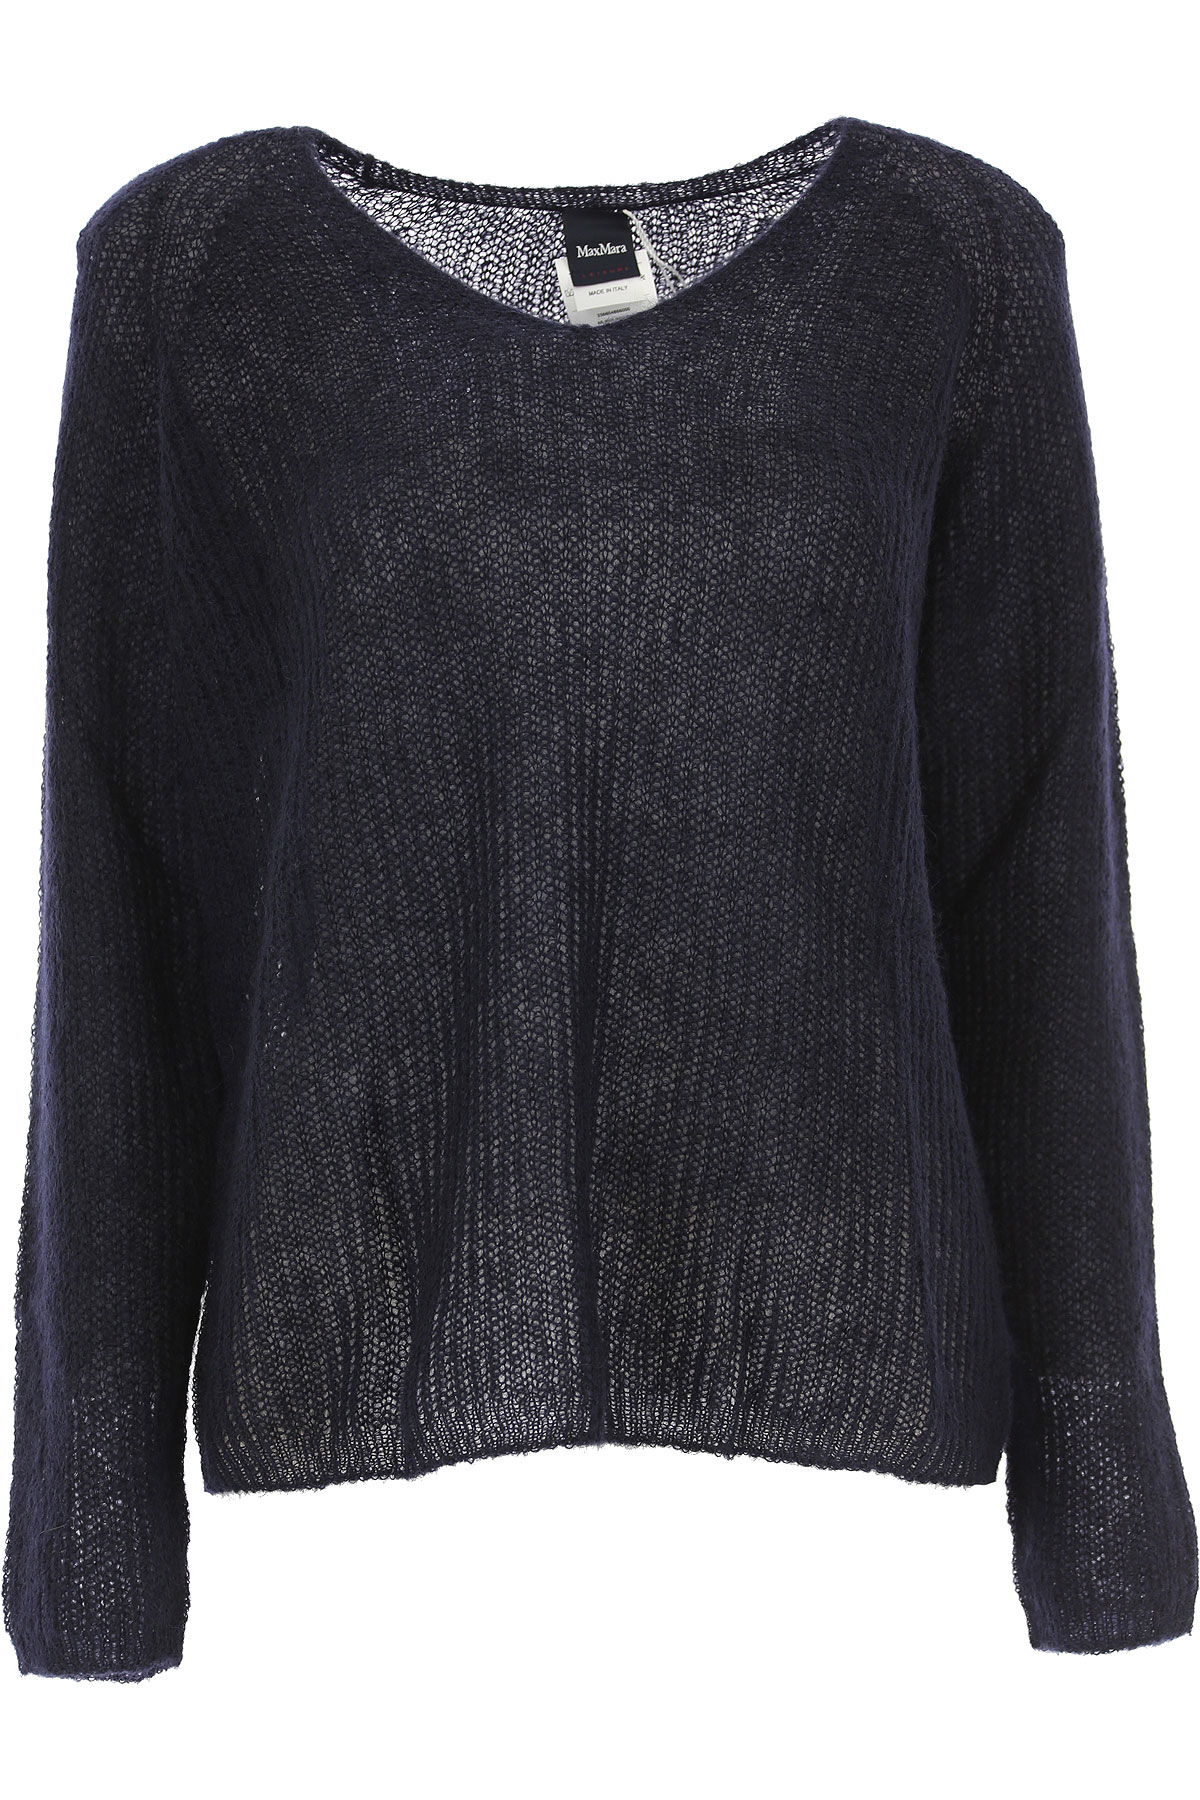 Image of Weekend by Max Mara Sweater for Women Jumper, Dark Navy Blue, Mohair, 2017, 4 6 8